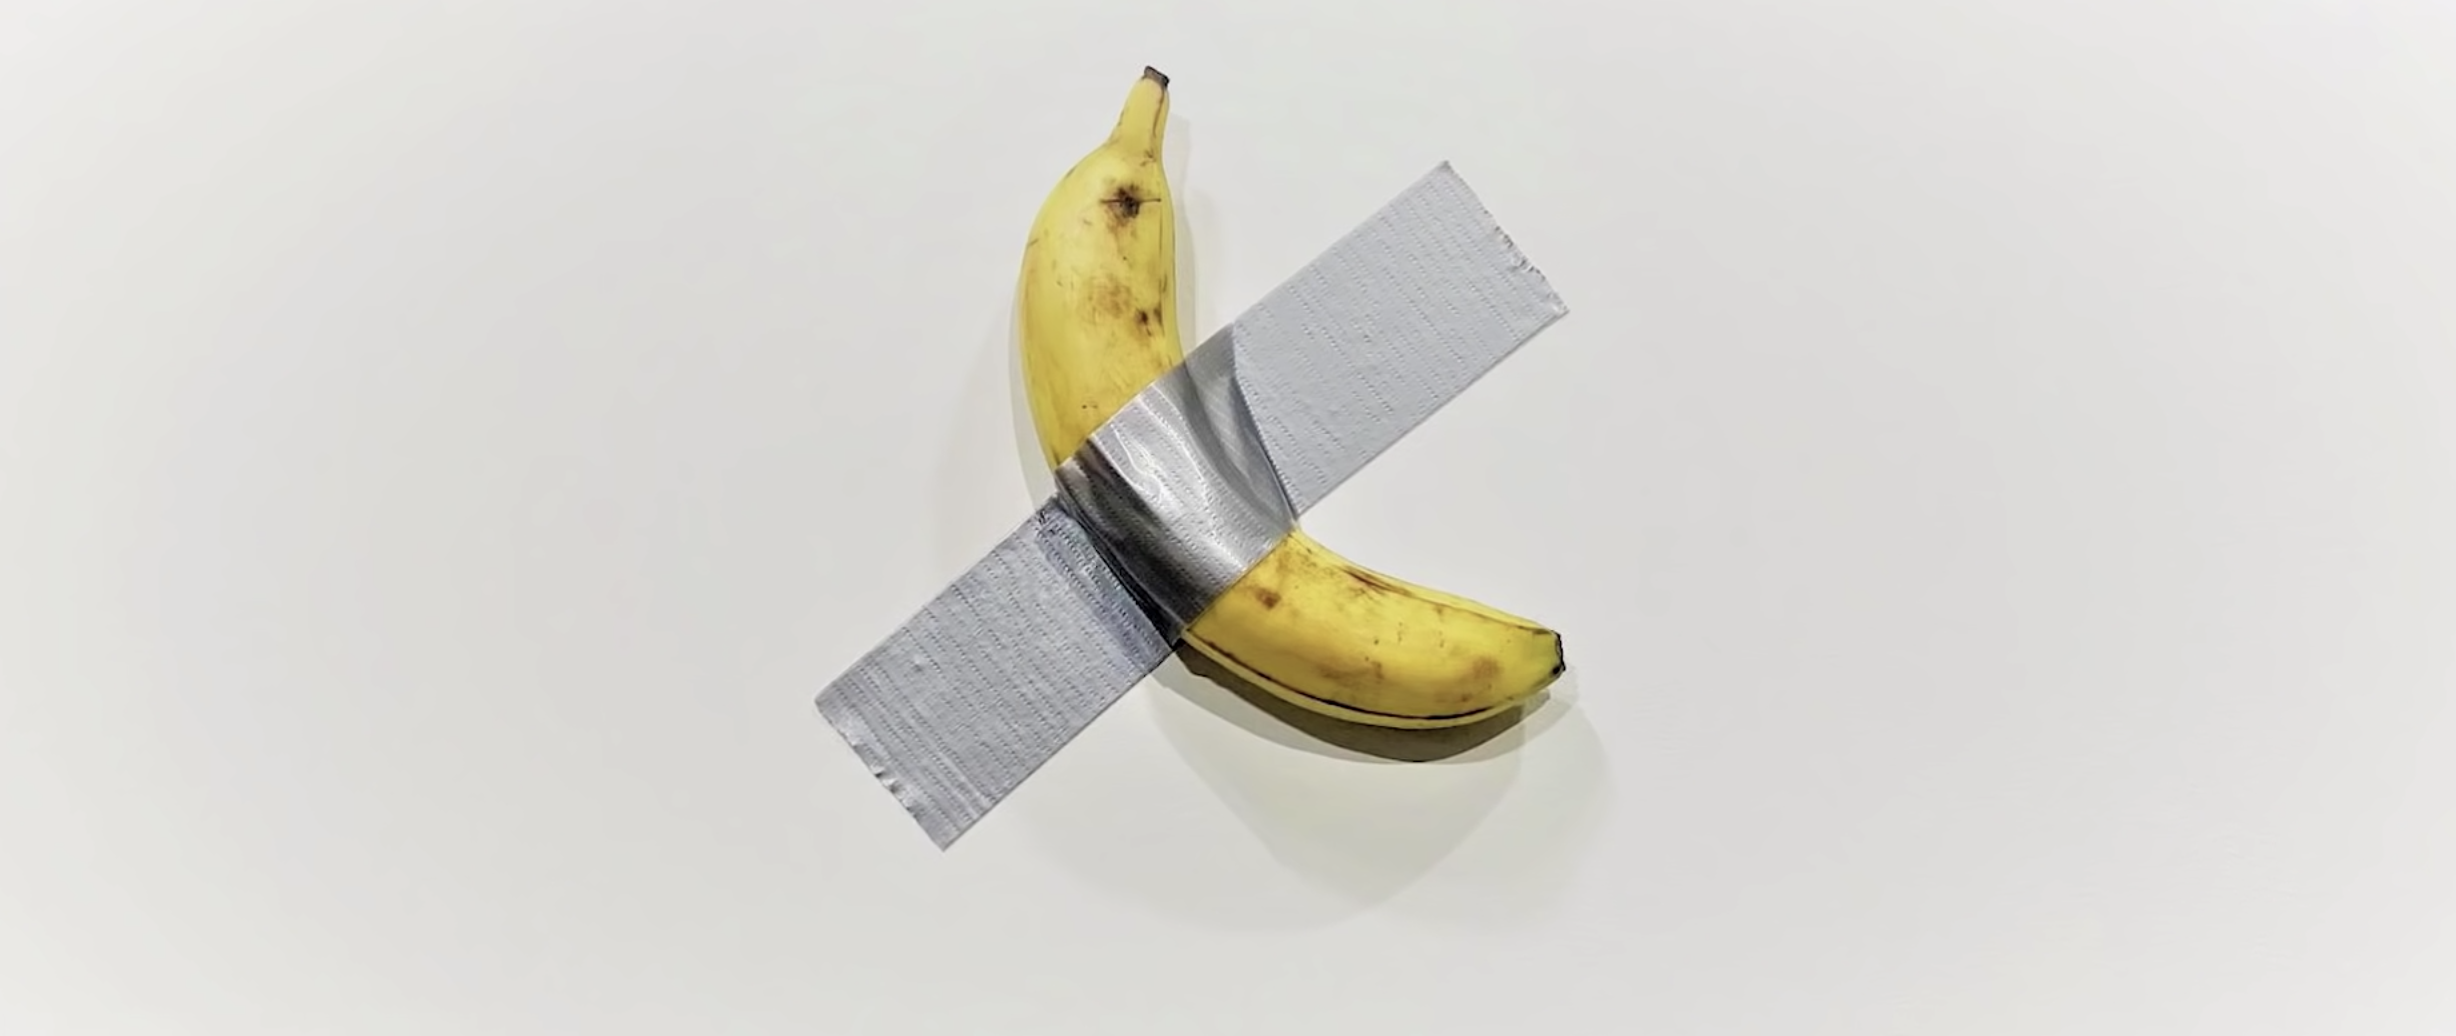 Artist Maurizio Cattelan's duct taped banana to a wall